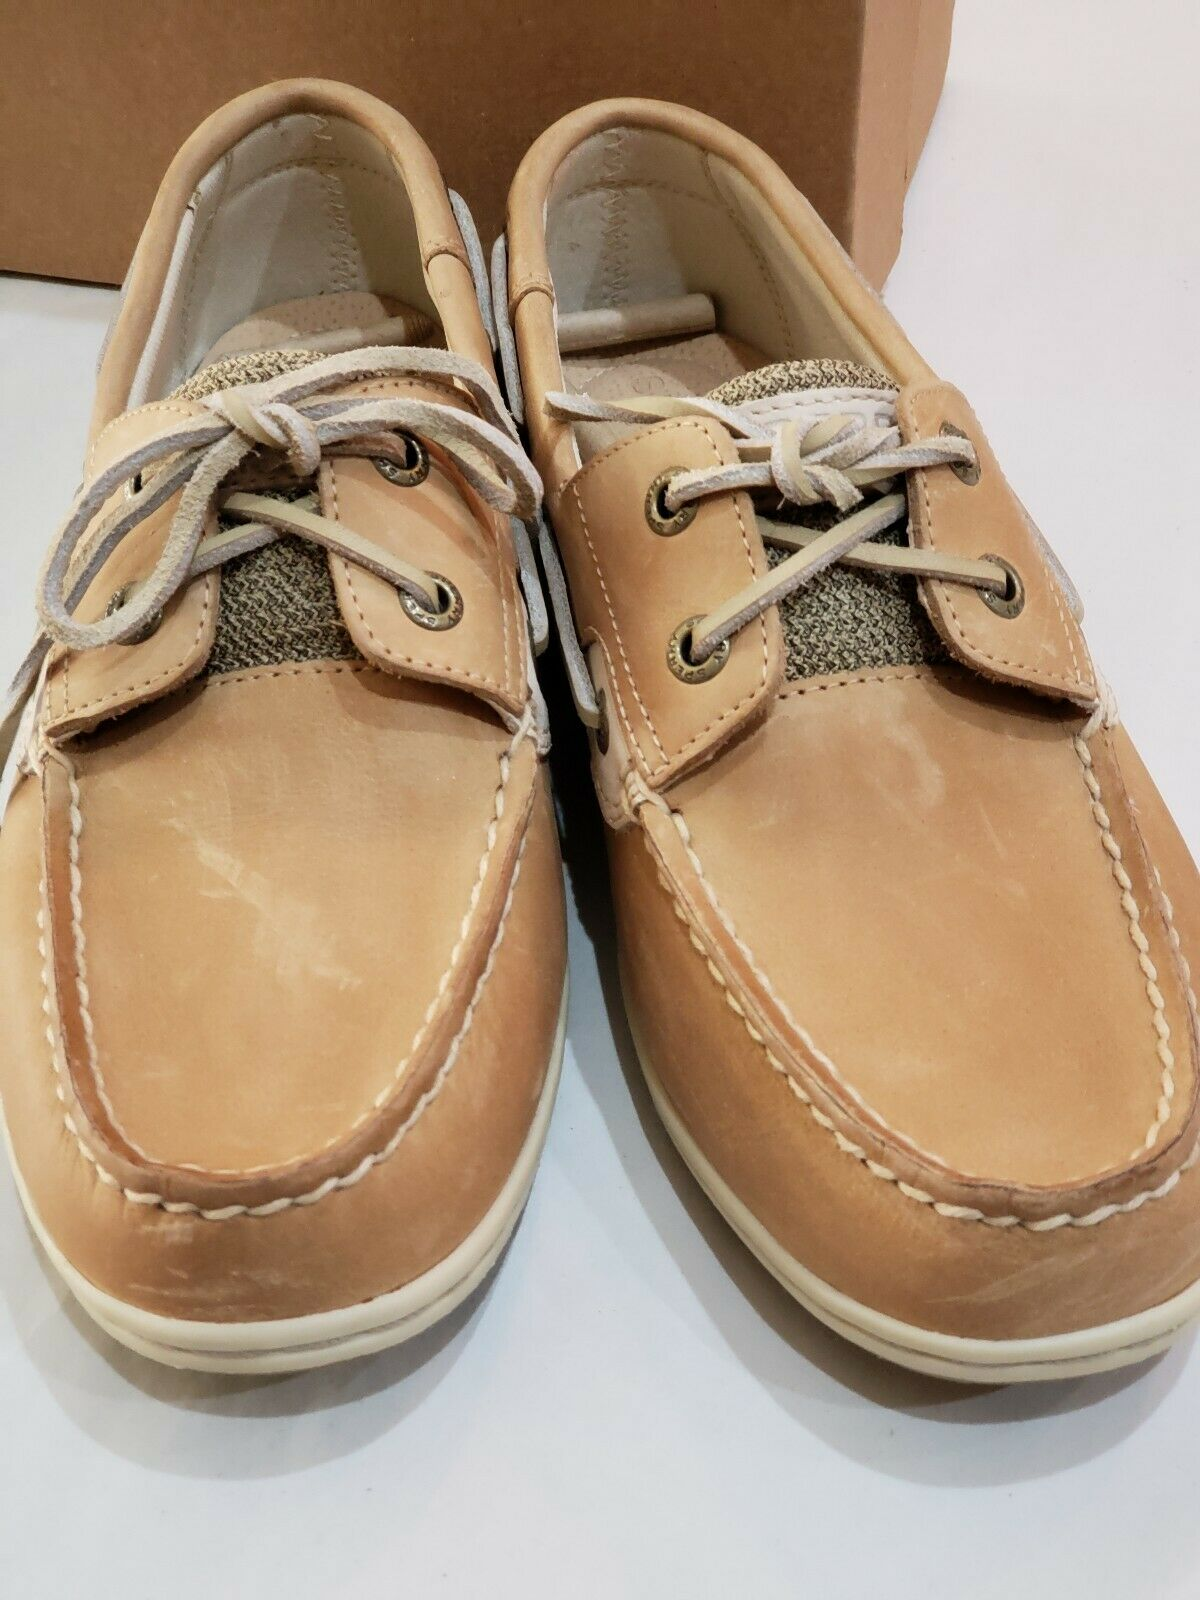 Women's Sperry Koifish Boat shoes shoes shoes Core Linen Size 7.5 STS95589 42f473